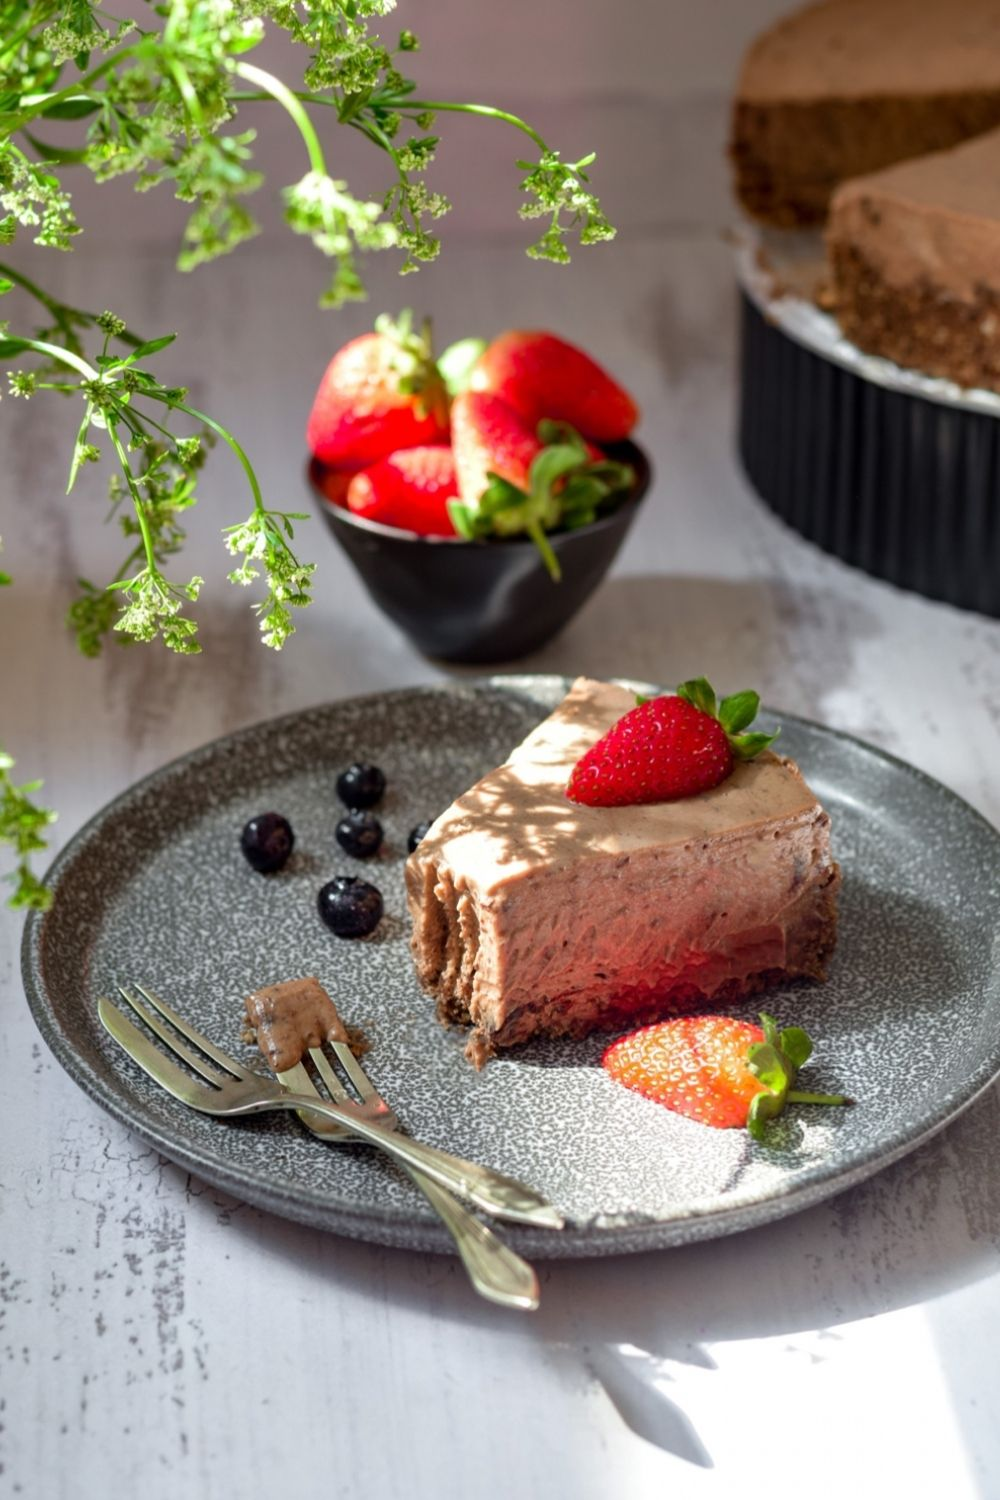 A pice of no bake chocolate cheesecake on a plate